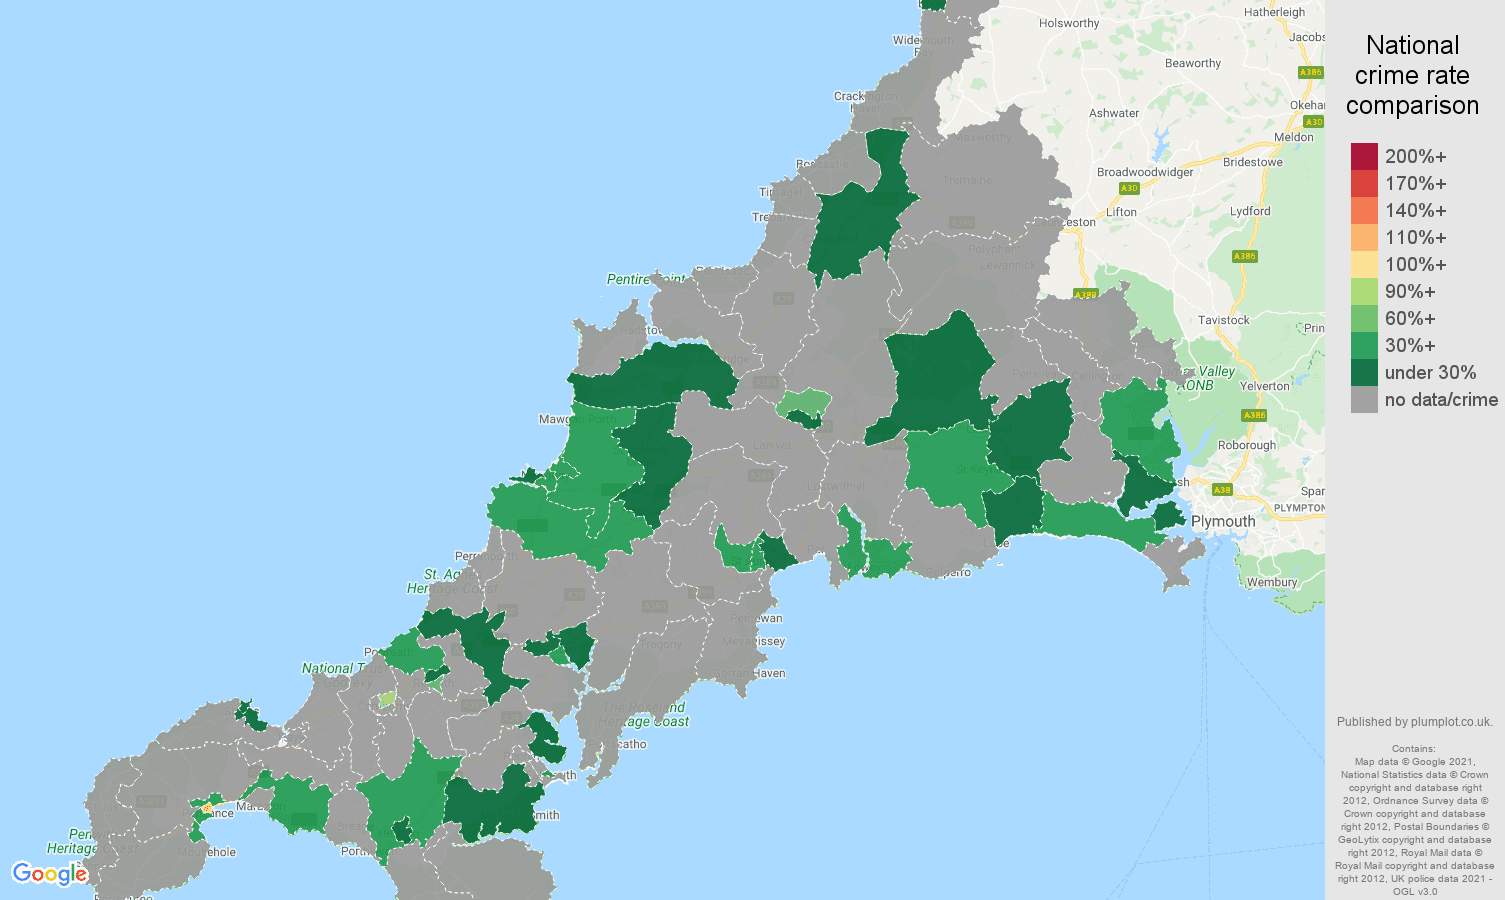 Cornwall robbery crime rate comparison map